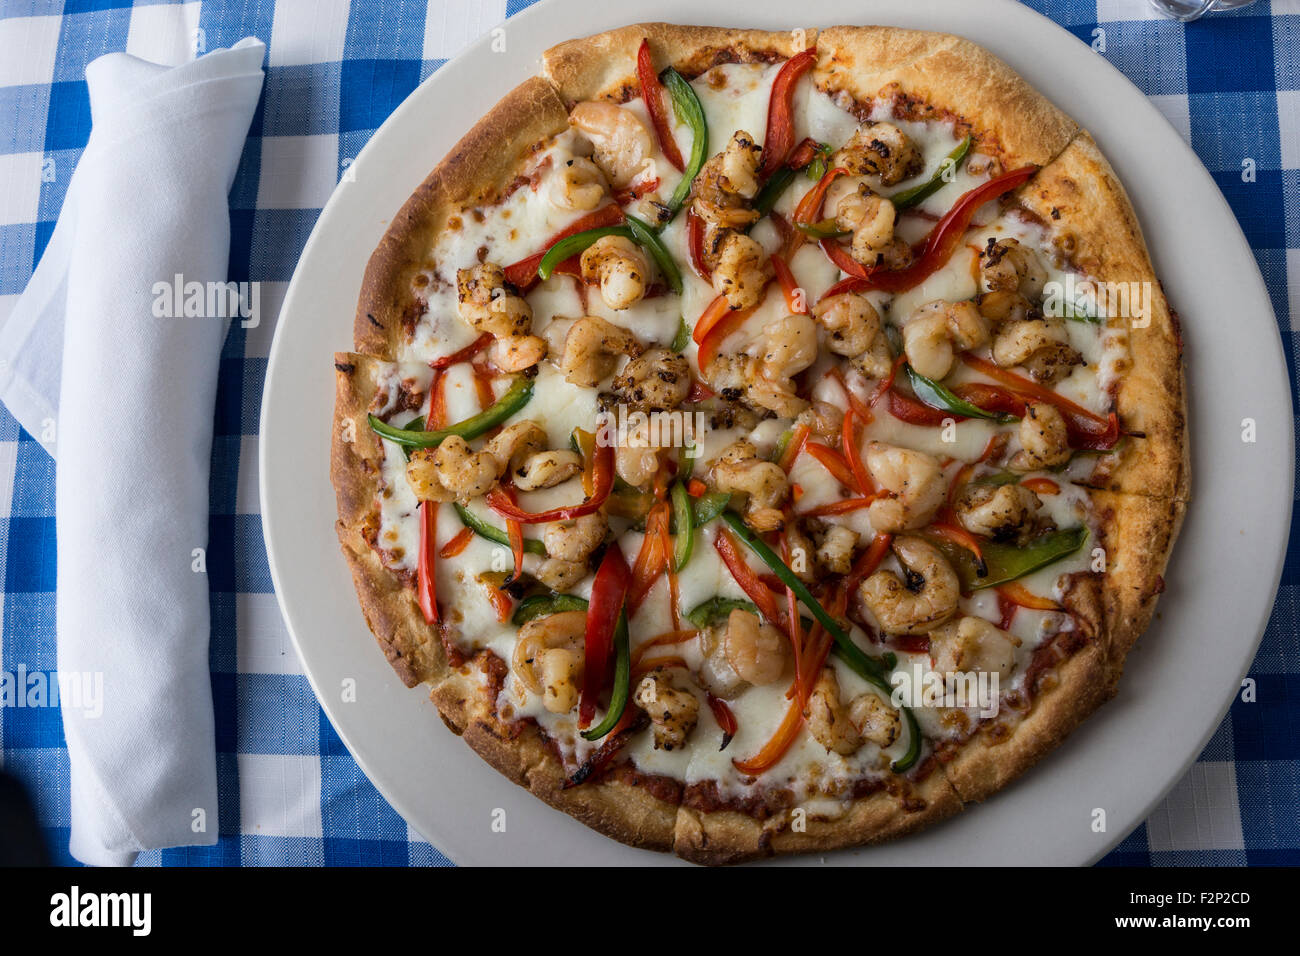 New York Pizza Stock Photos & New York Pizza Stock Images - Alamy